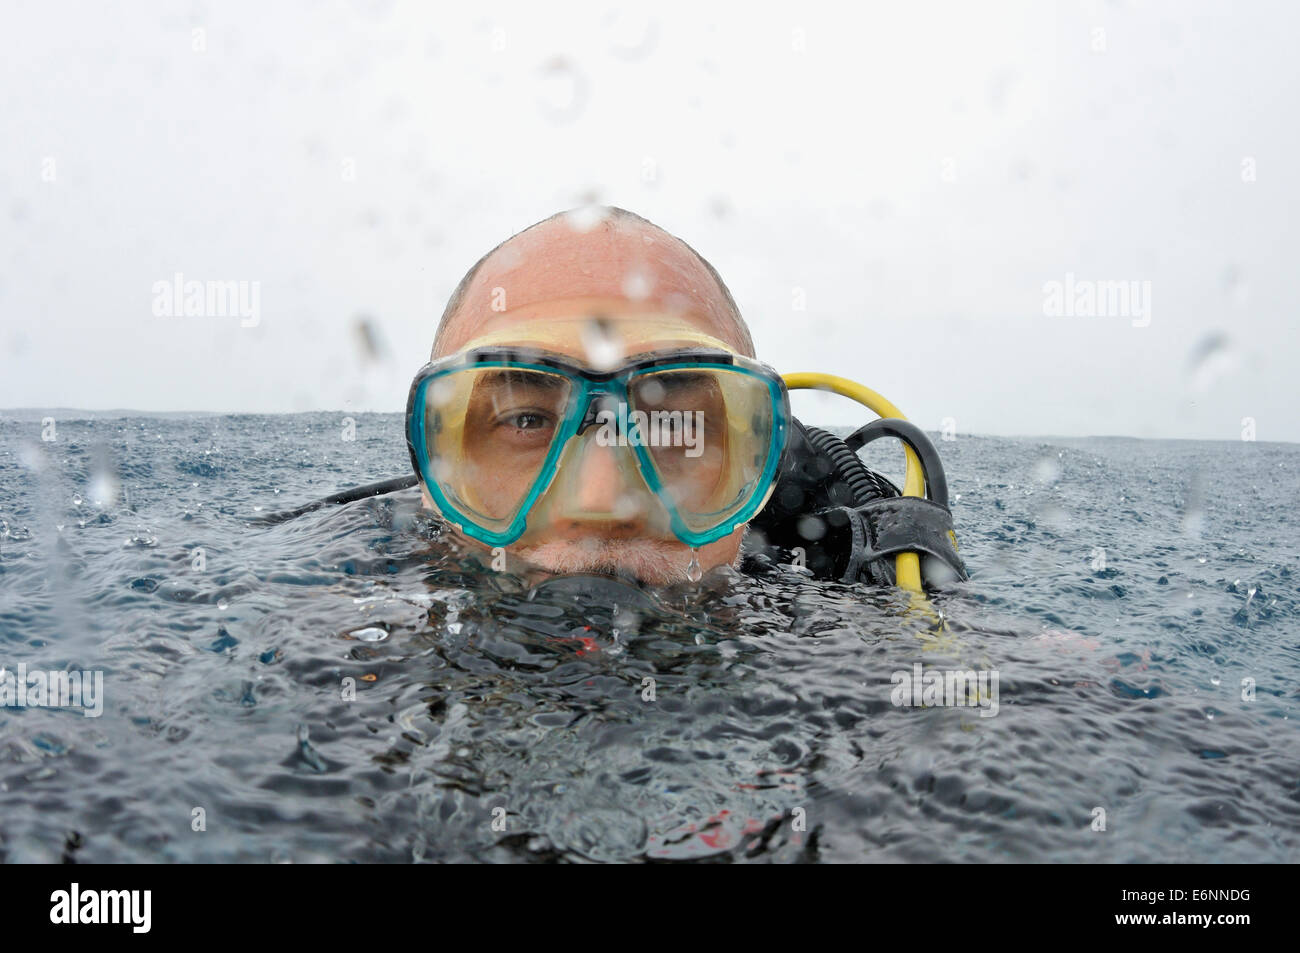 Scuba diver portrait in the rain at the water surface - Stock Image